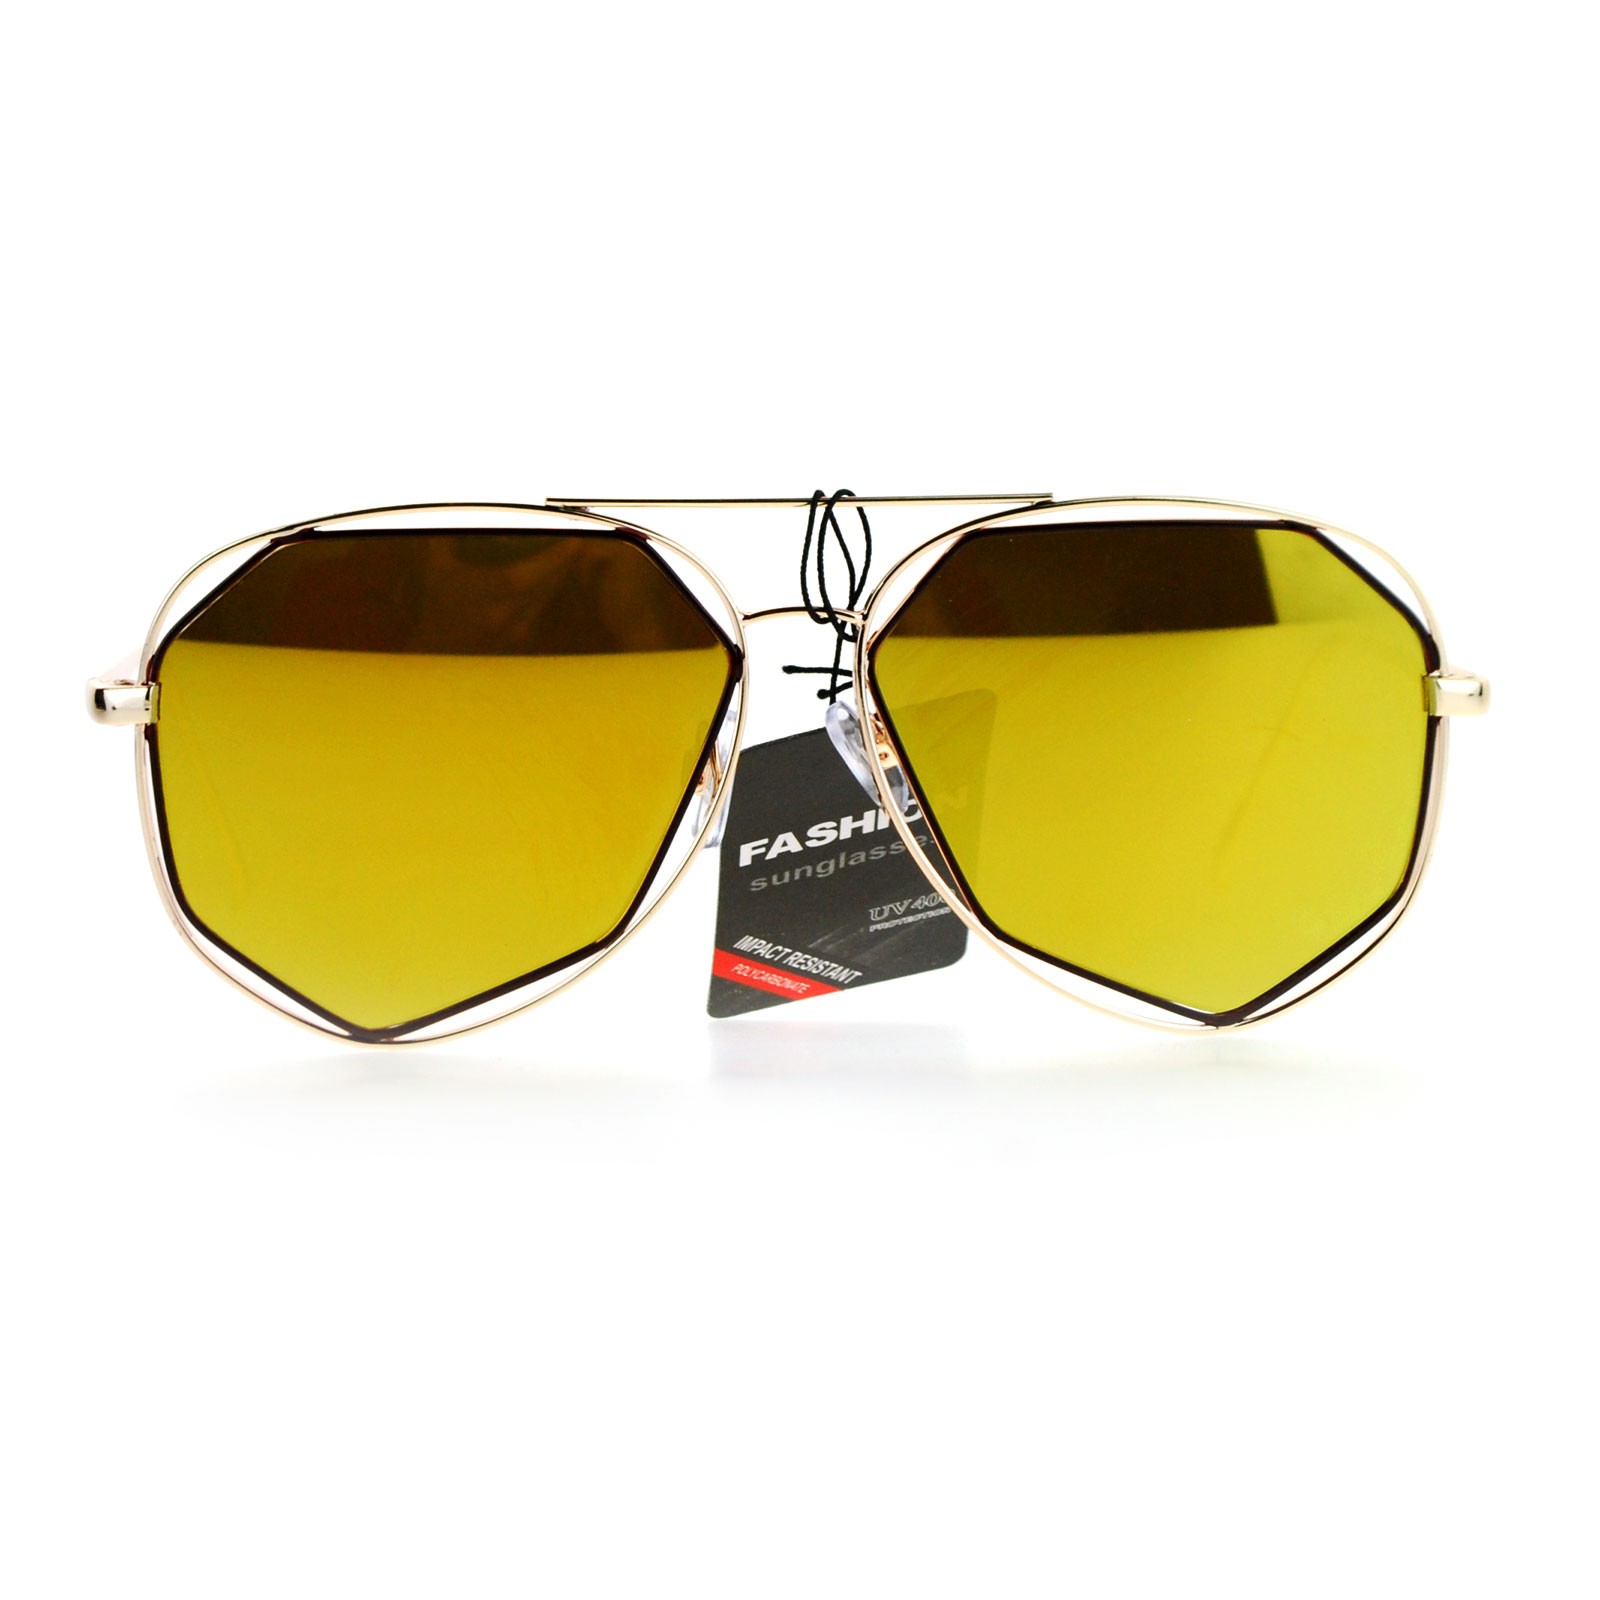 f4cb3f5aa02 SA106 - SA106 Mirror Double Octagon Metal Rim Mens Aviator Sunglasses Gold  Brown Orange - Walmart.com